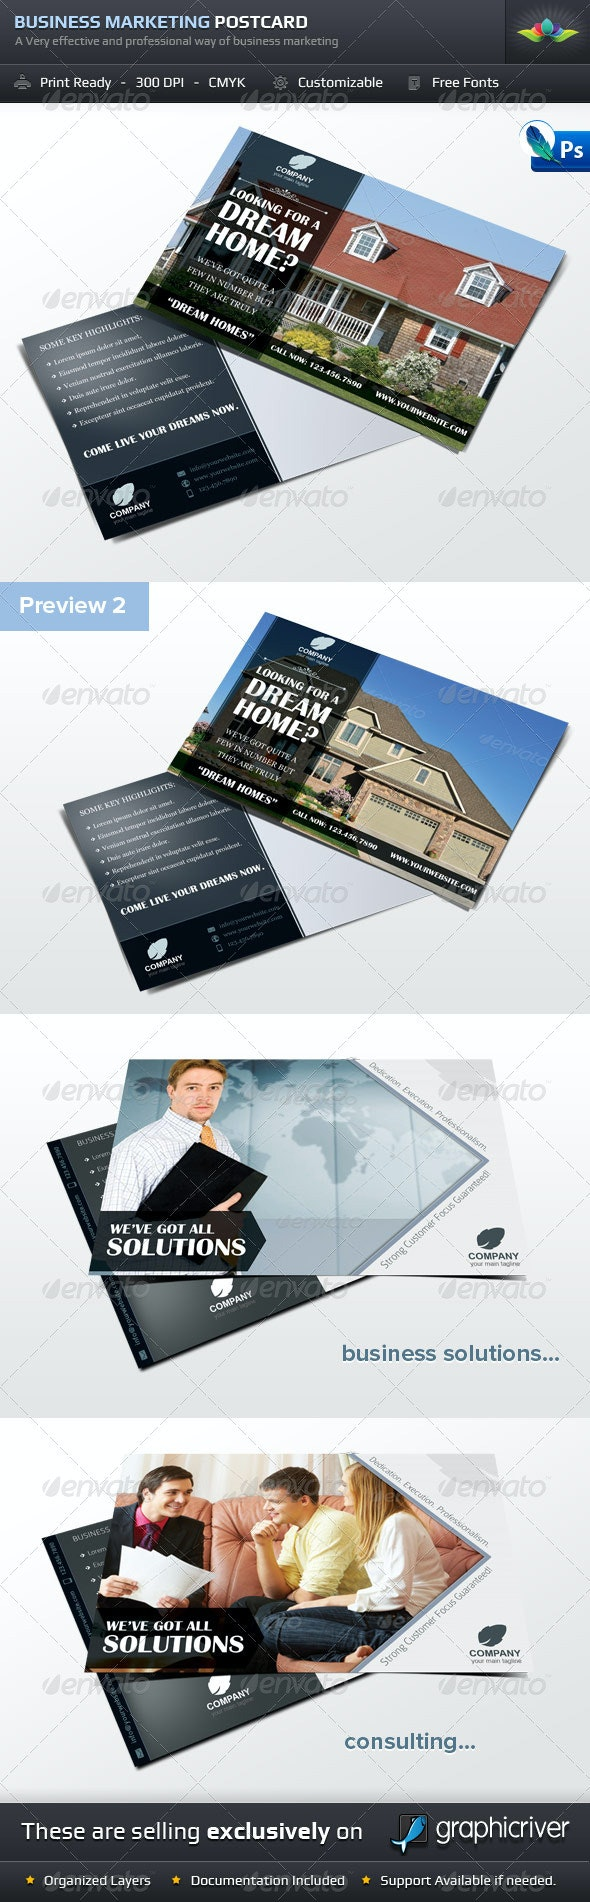 Business Marketing Postcard Template Set - Stationery Print Templates